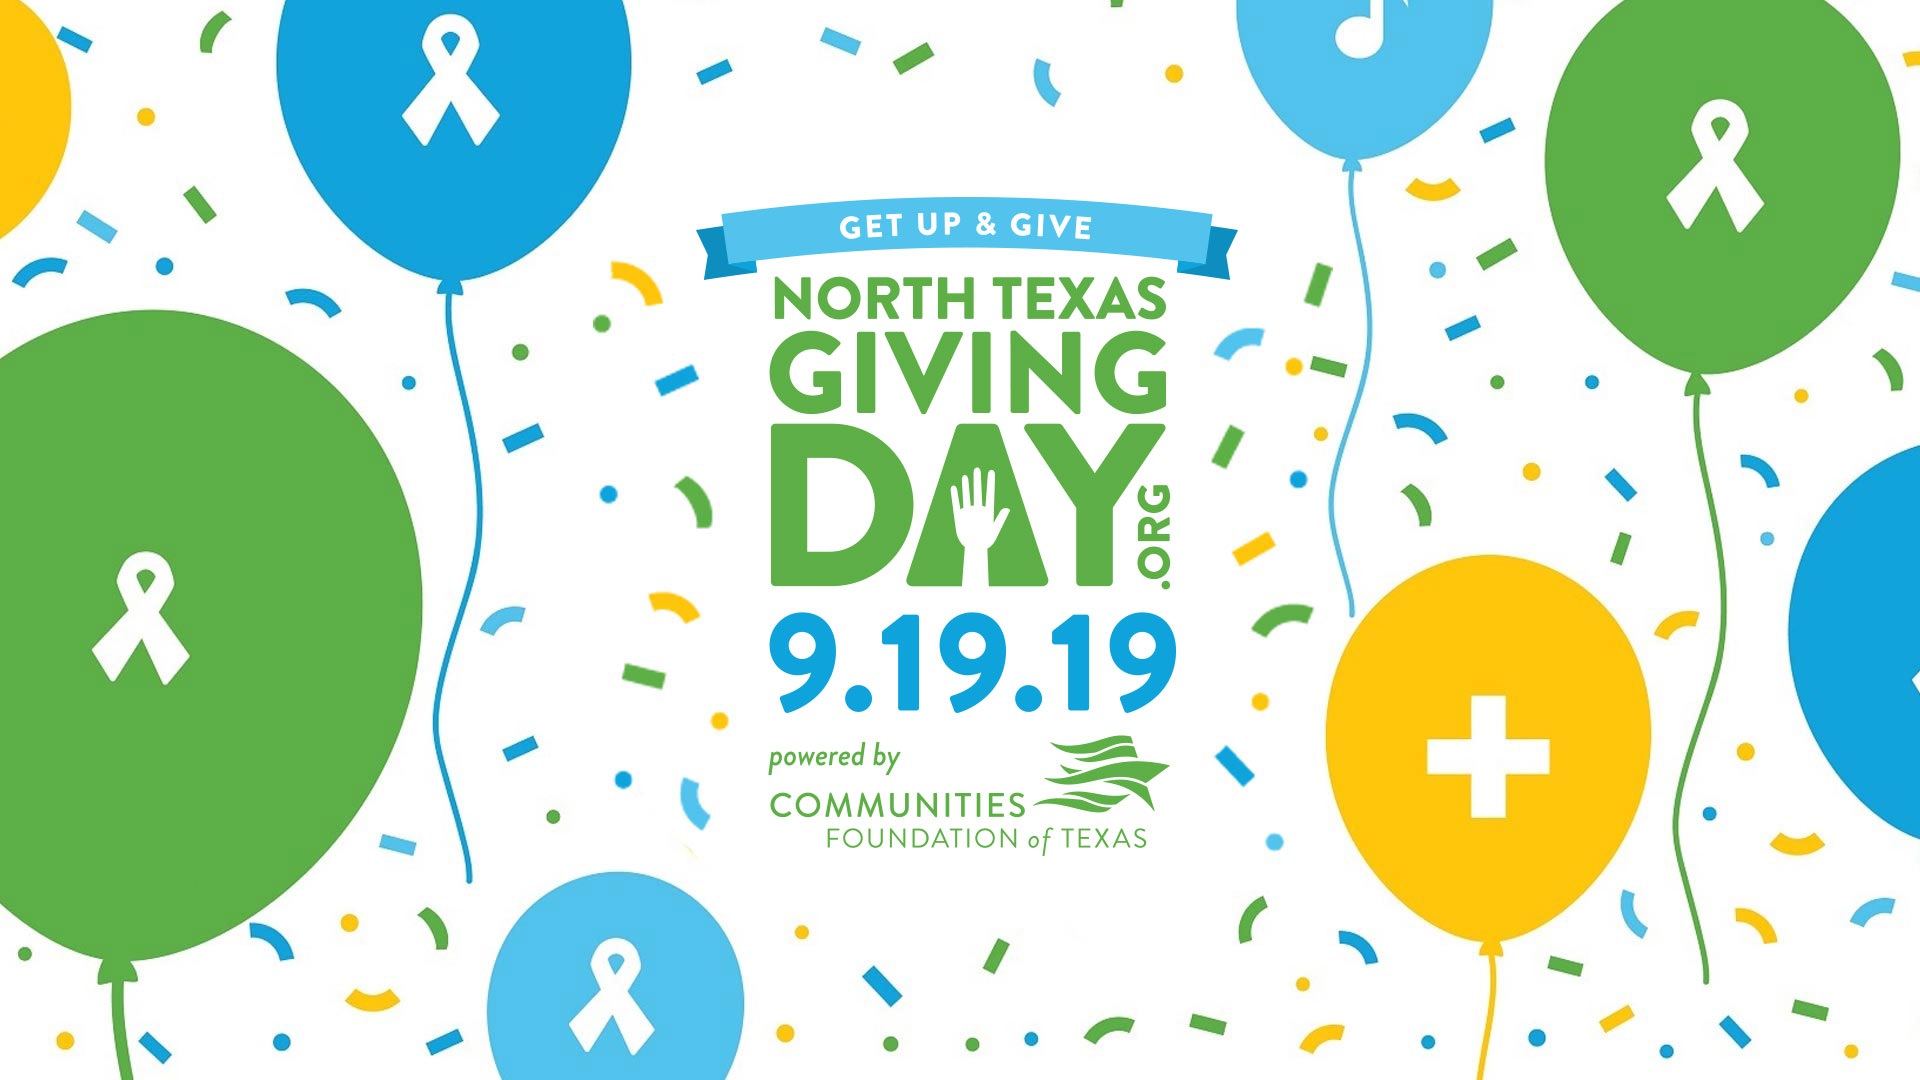 Oasis Center 2019 North Texas Giving Dsy